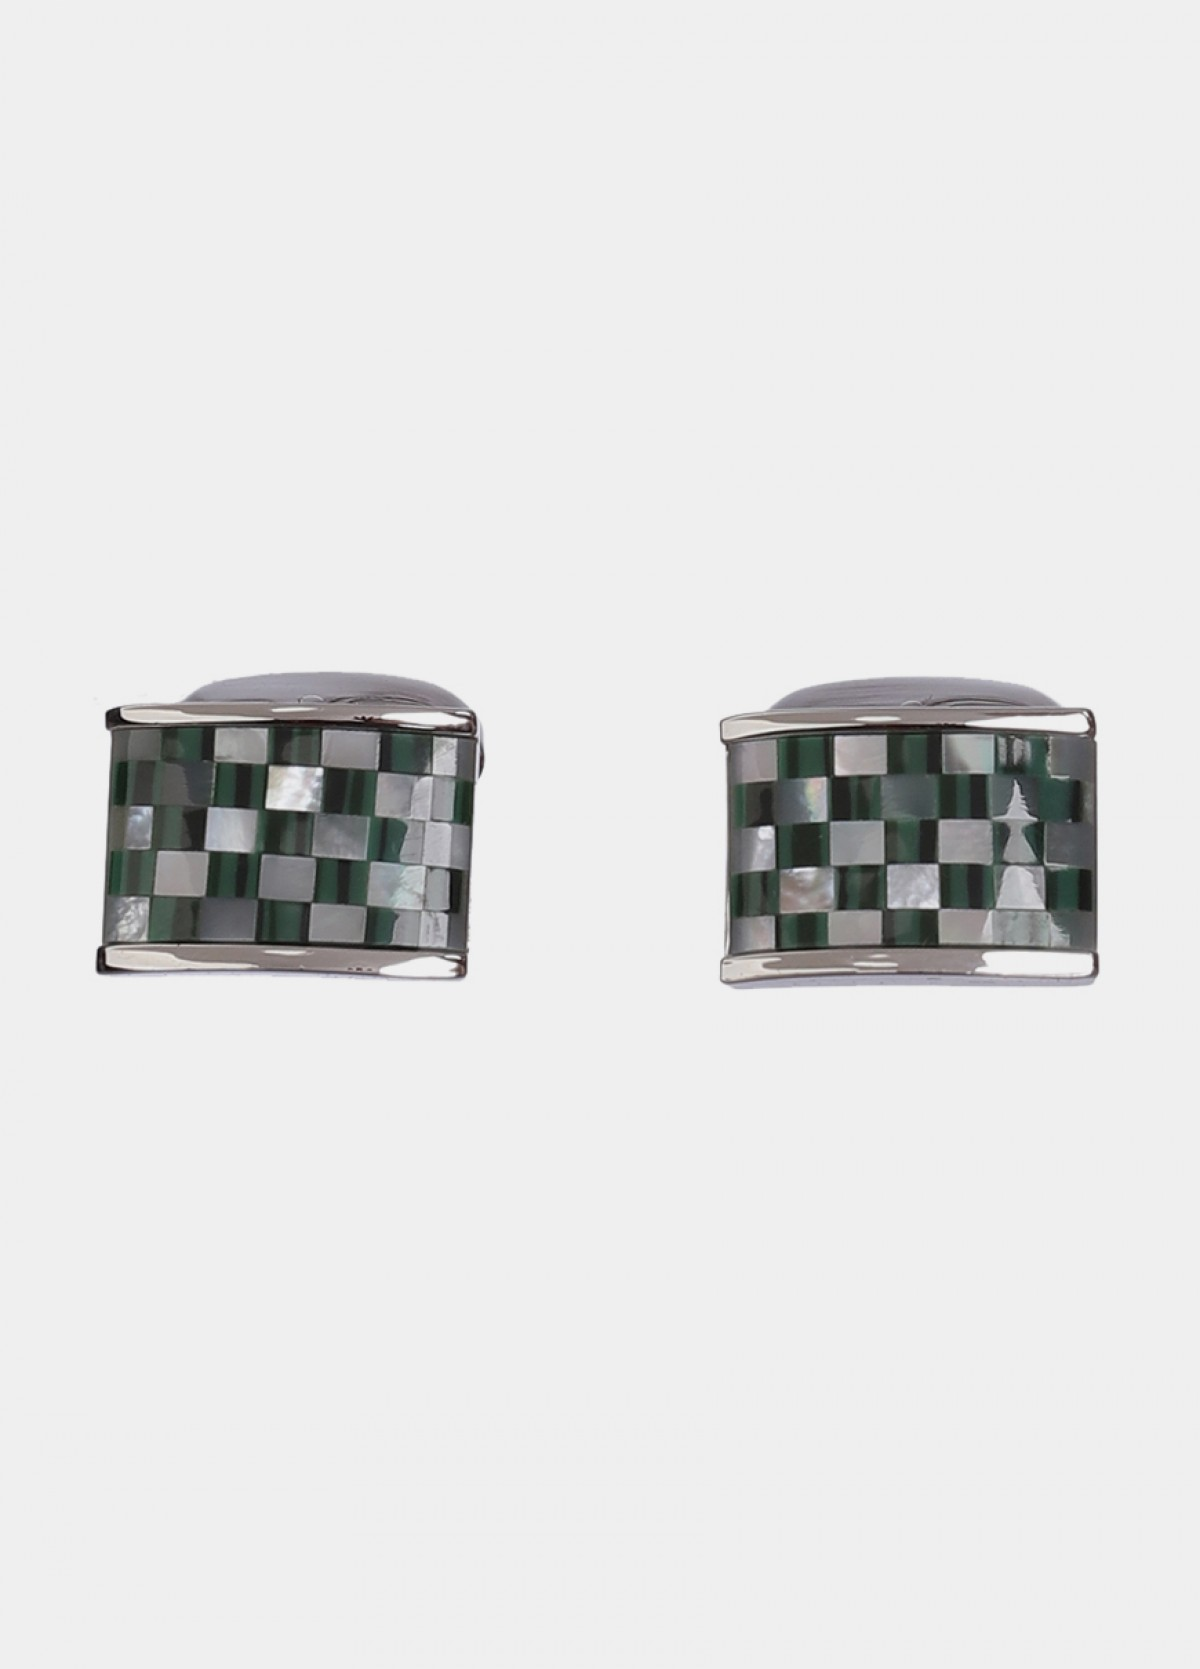 The Checkmate Cufflinks